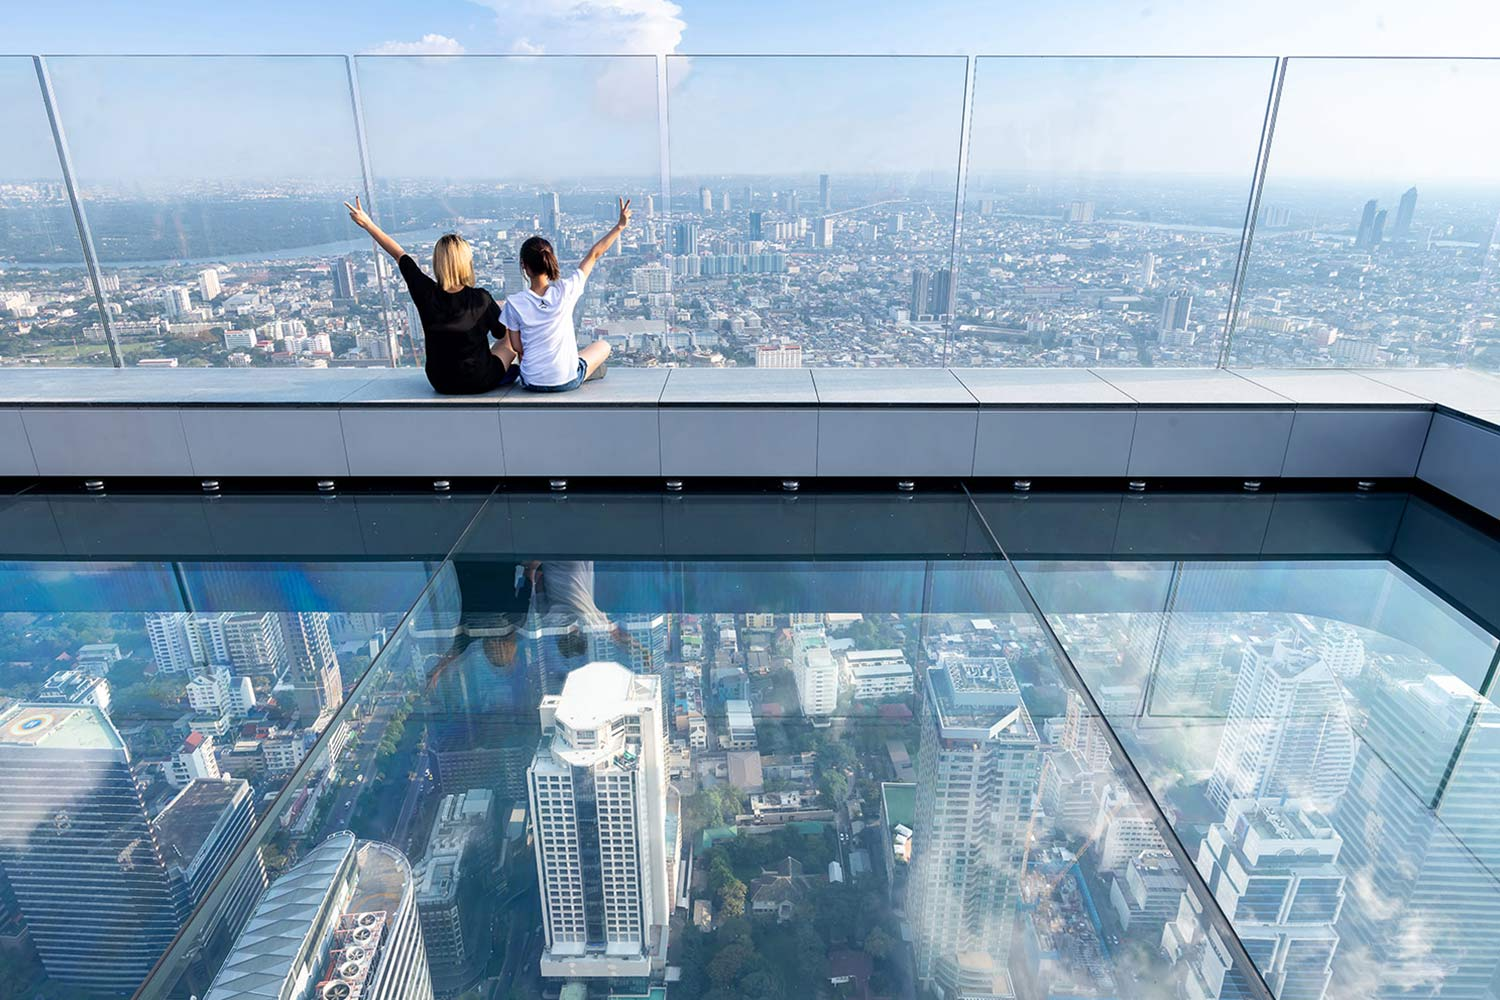 SkyWalkers sitting on SkyDeck at the top of MahaNakhon Tower